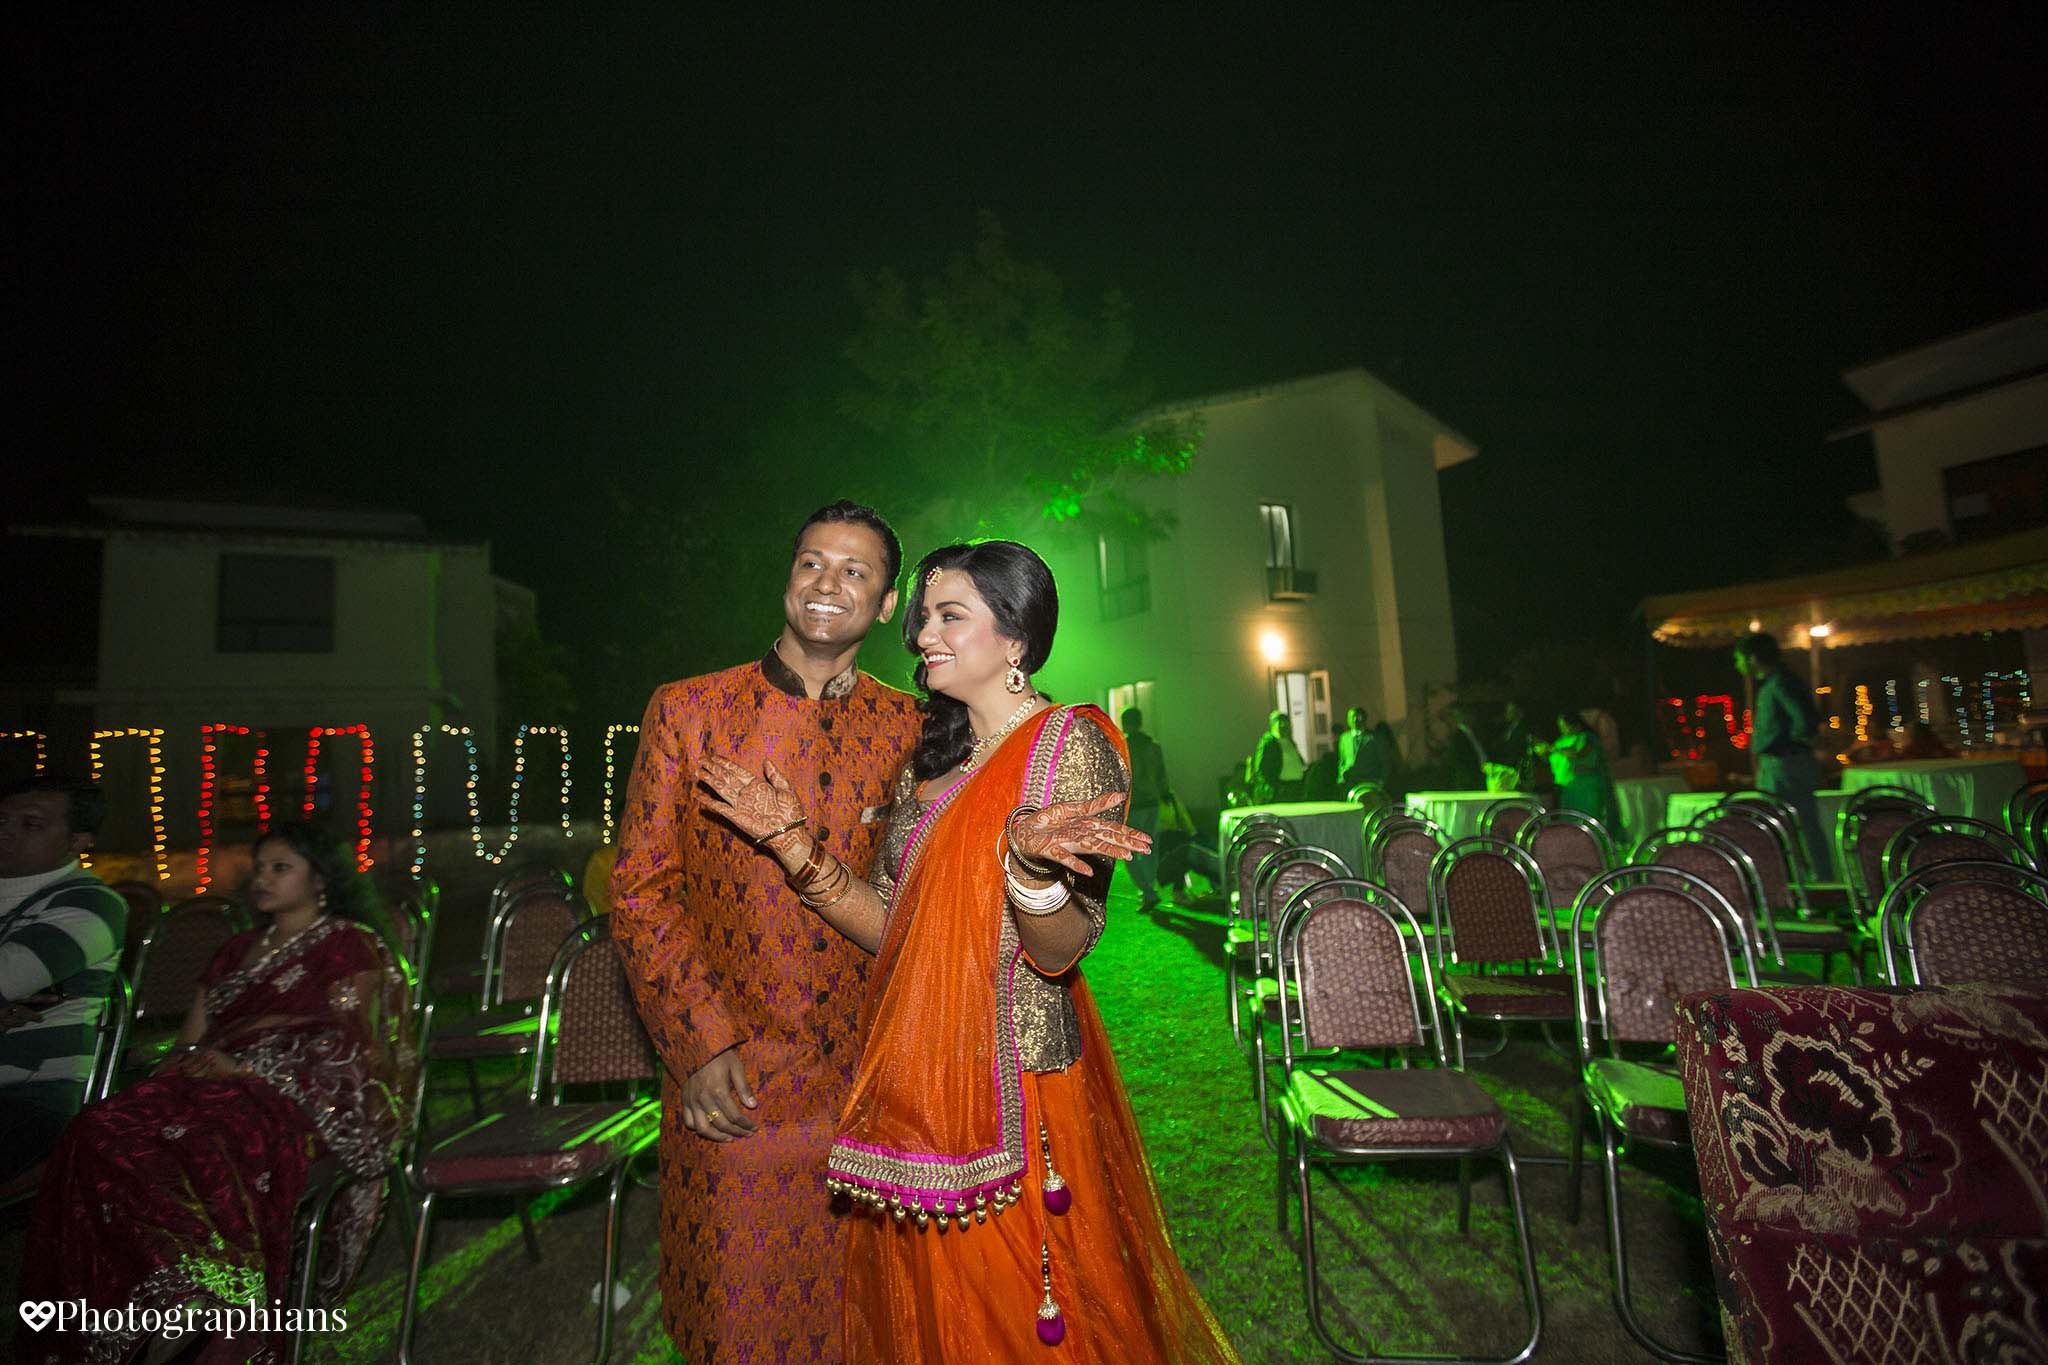 Photographians_Indian_Destination_Wedding_132